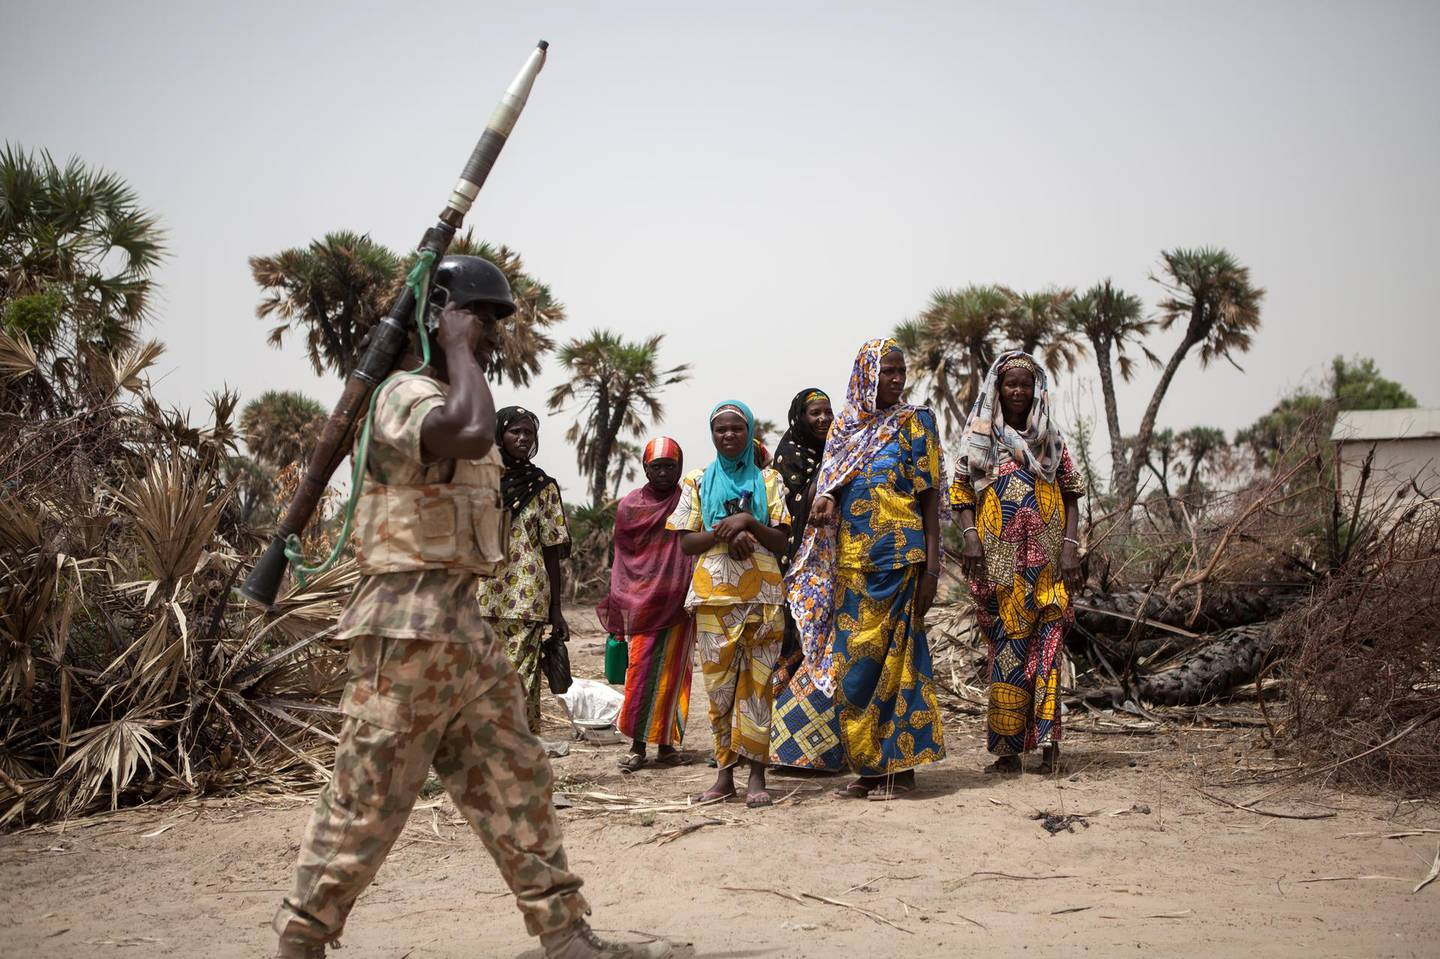 A Nigerian soldier, with a rocket propelled grenade (RPG), patrols on the outskirt of the town of Damasak in North East Nigeria on April, 25 2017 as thousands of Nigerians, who were freed in 2016 by the Nigerian army from Boko Haram insurgents, are returning to their homes in Damasak. - Yagana Bukar's younger brothers Mohammed and Sadiq were among about 300 children kidnapped by Boko Haram from the town of Damasak in remote northeastern Nigeria nearly three years ago. But instead of the global outrage and social media campaign that followed a similar abduction of 219 schoolgirls from the town of Chibok, there were no protests for the children of Damasak. (Photo by Florian PLAUCHEUR / AFP)